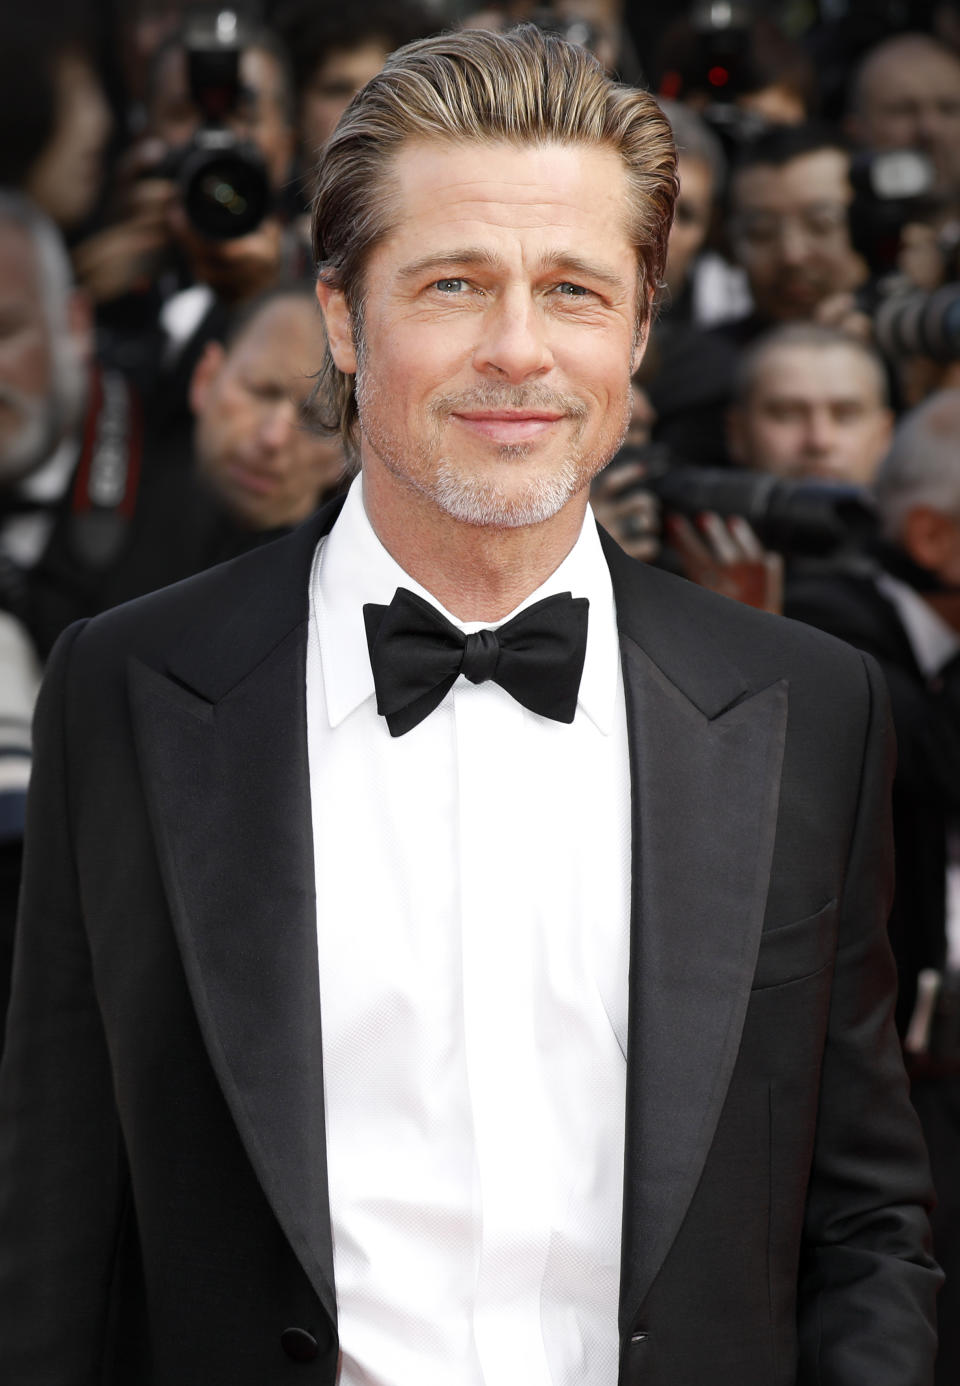 CANNES, FRANCE - MAY 21: (EDITORS NOTE: Image has been digitally retouched) Brad Pitt attends the premiere of 'Once Upon A Time In Hollywood' during the 72nd Cannes Film Festival at the Palais des Festivals on May 21, 2019 in Cannes, France.  (Photo by Kurt Krieger/Corbis via Getty Images)